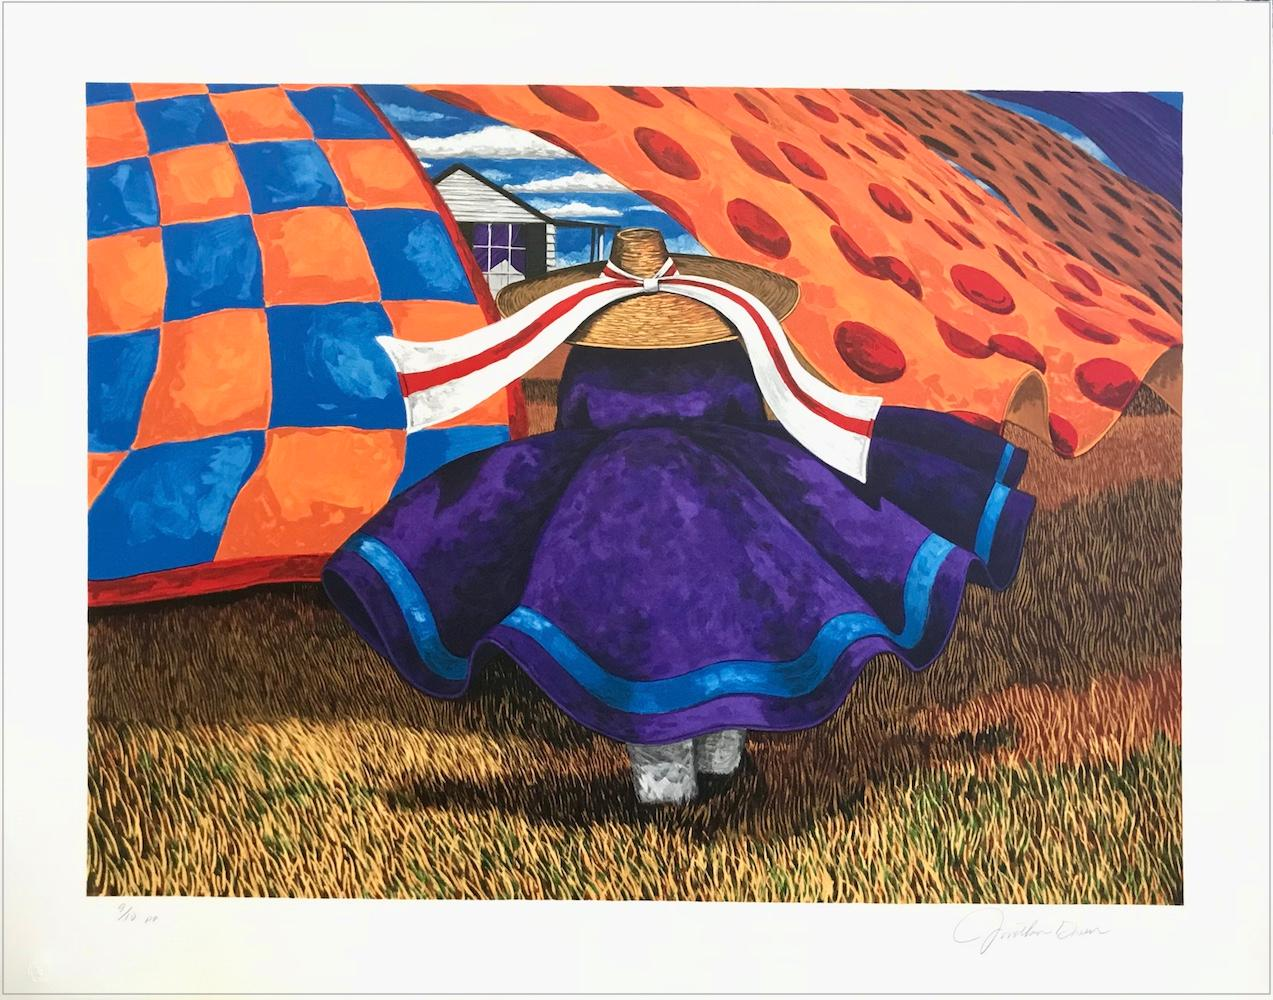 FARM WOMAN Signed Lithograph, Gullah Woman, Quilts, African American Culture